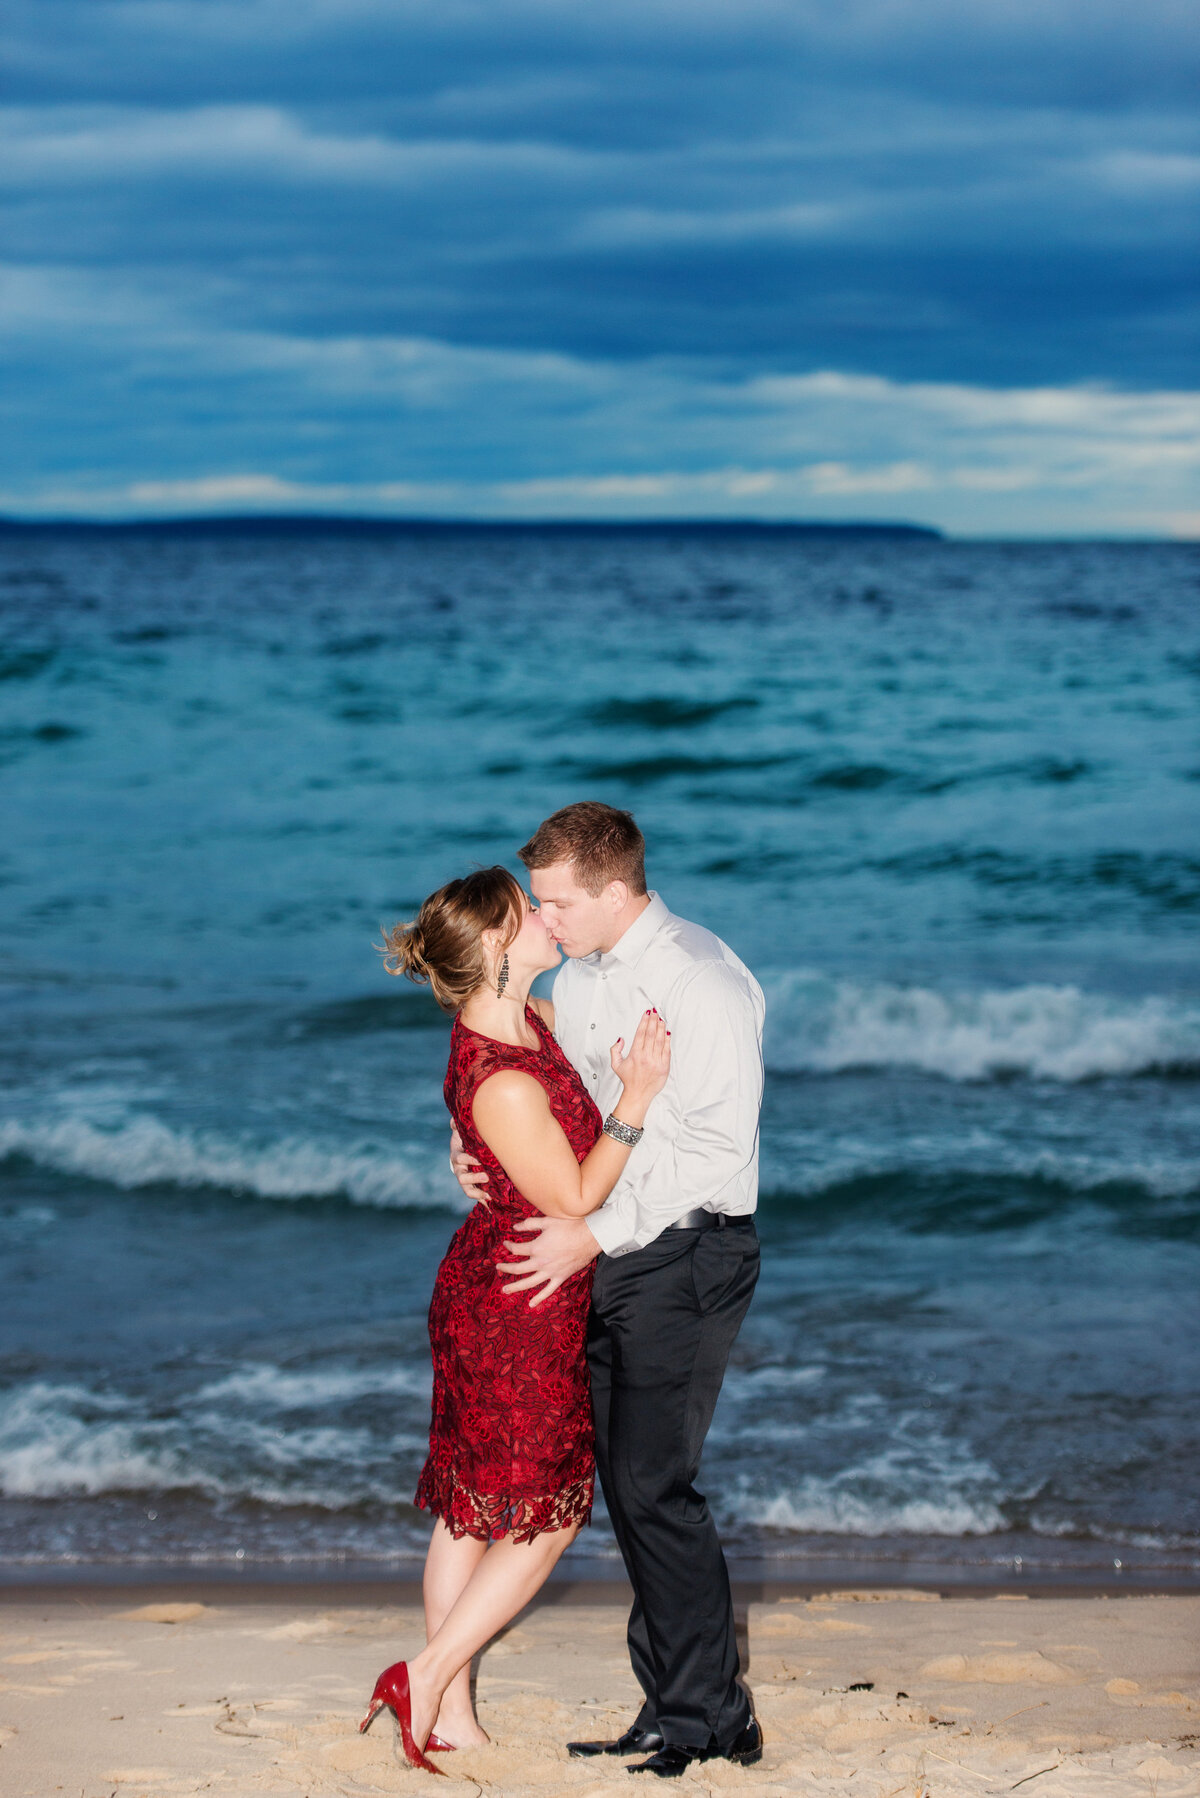 traverse-city-michigan-engagement-wedding-photography-14